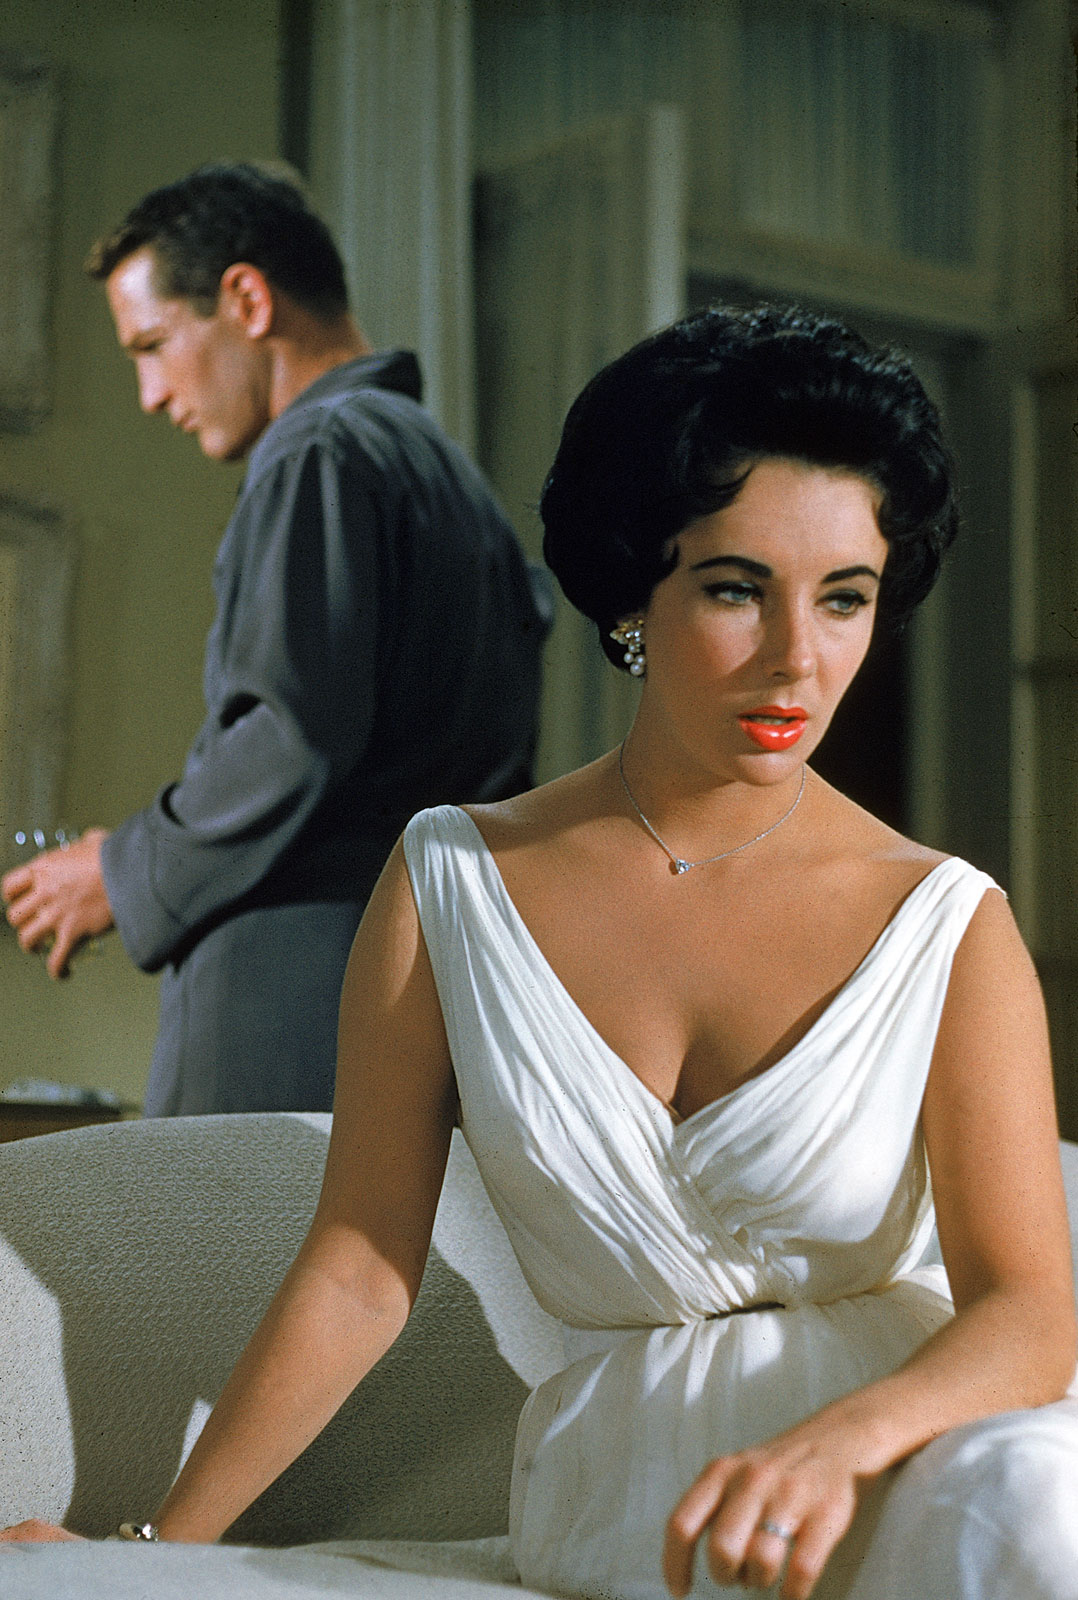 http://4.bp.blogspot.com/_04kZGR_ltmE/S-ZIUO-LgDI/AAAAAAAAHY0/bQJHJfeCu6Y/s1600/Cat-On-A-Hot-Tin-Roof-Paul-Newman-and-Elizabeth-Taylor.jpg